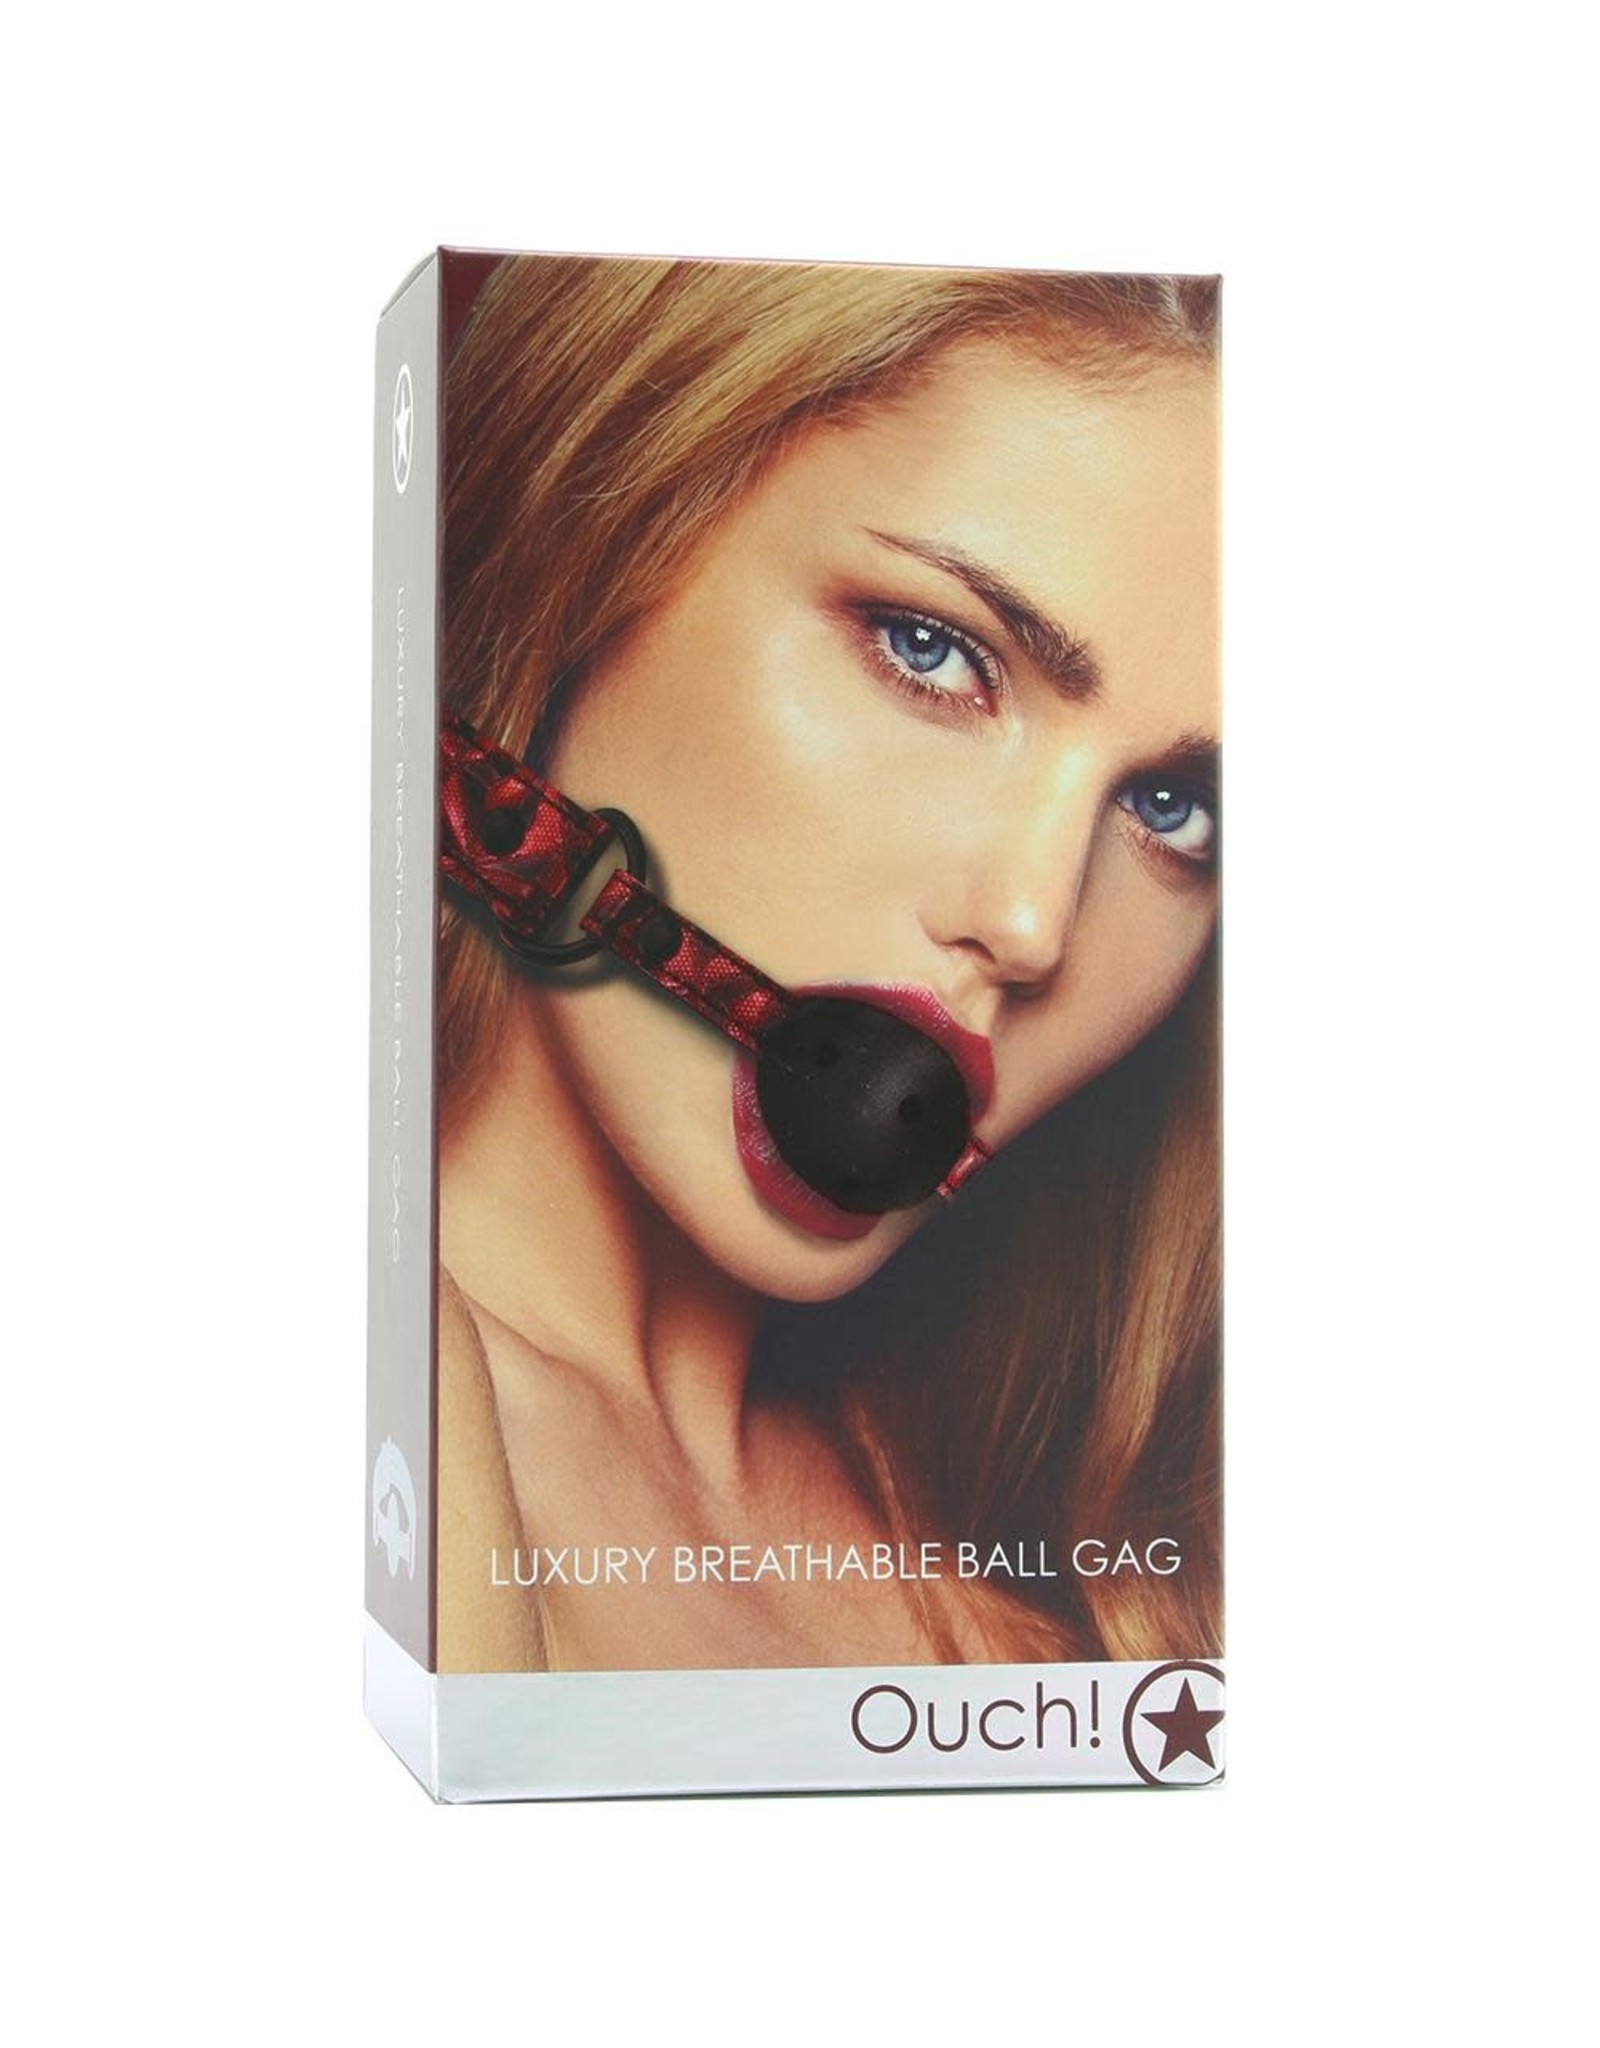 OUCH! - LUXURY BREATHABLE BALL GAG